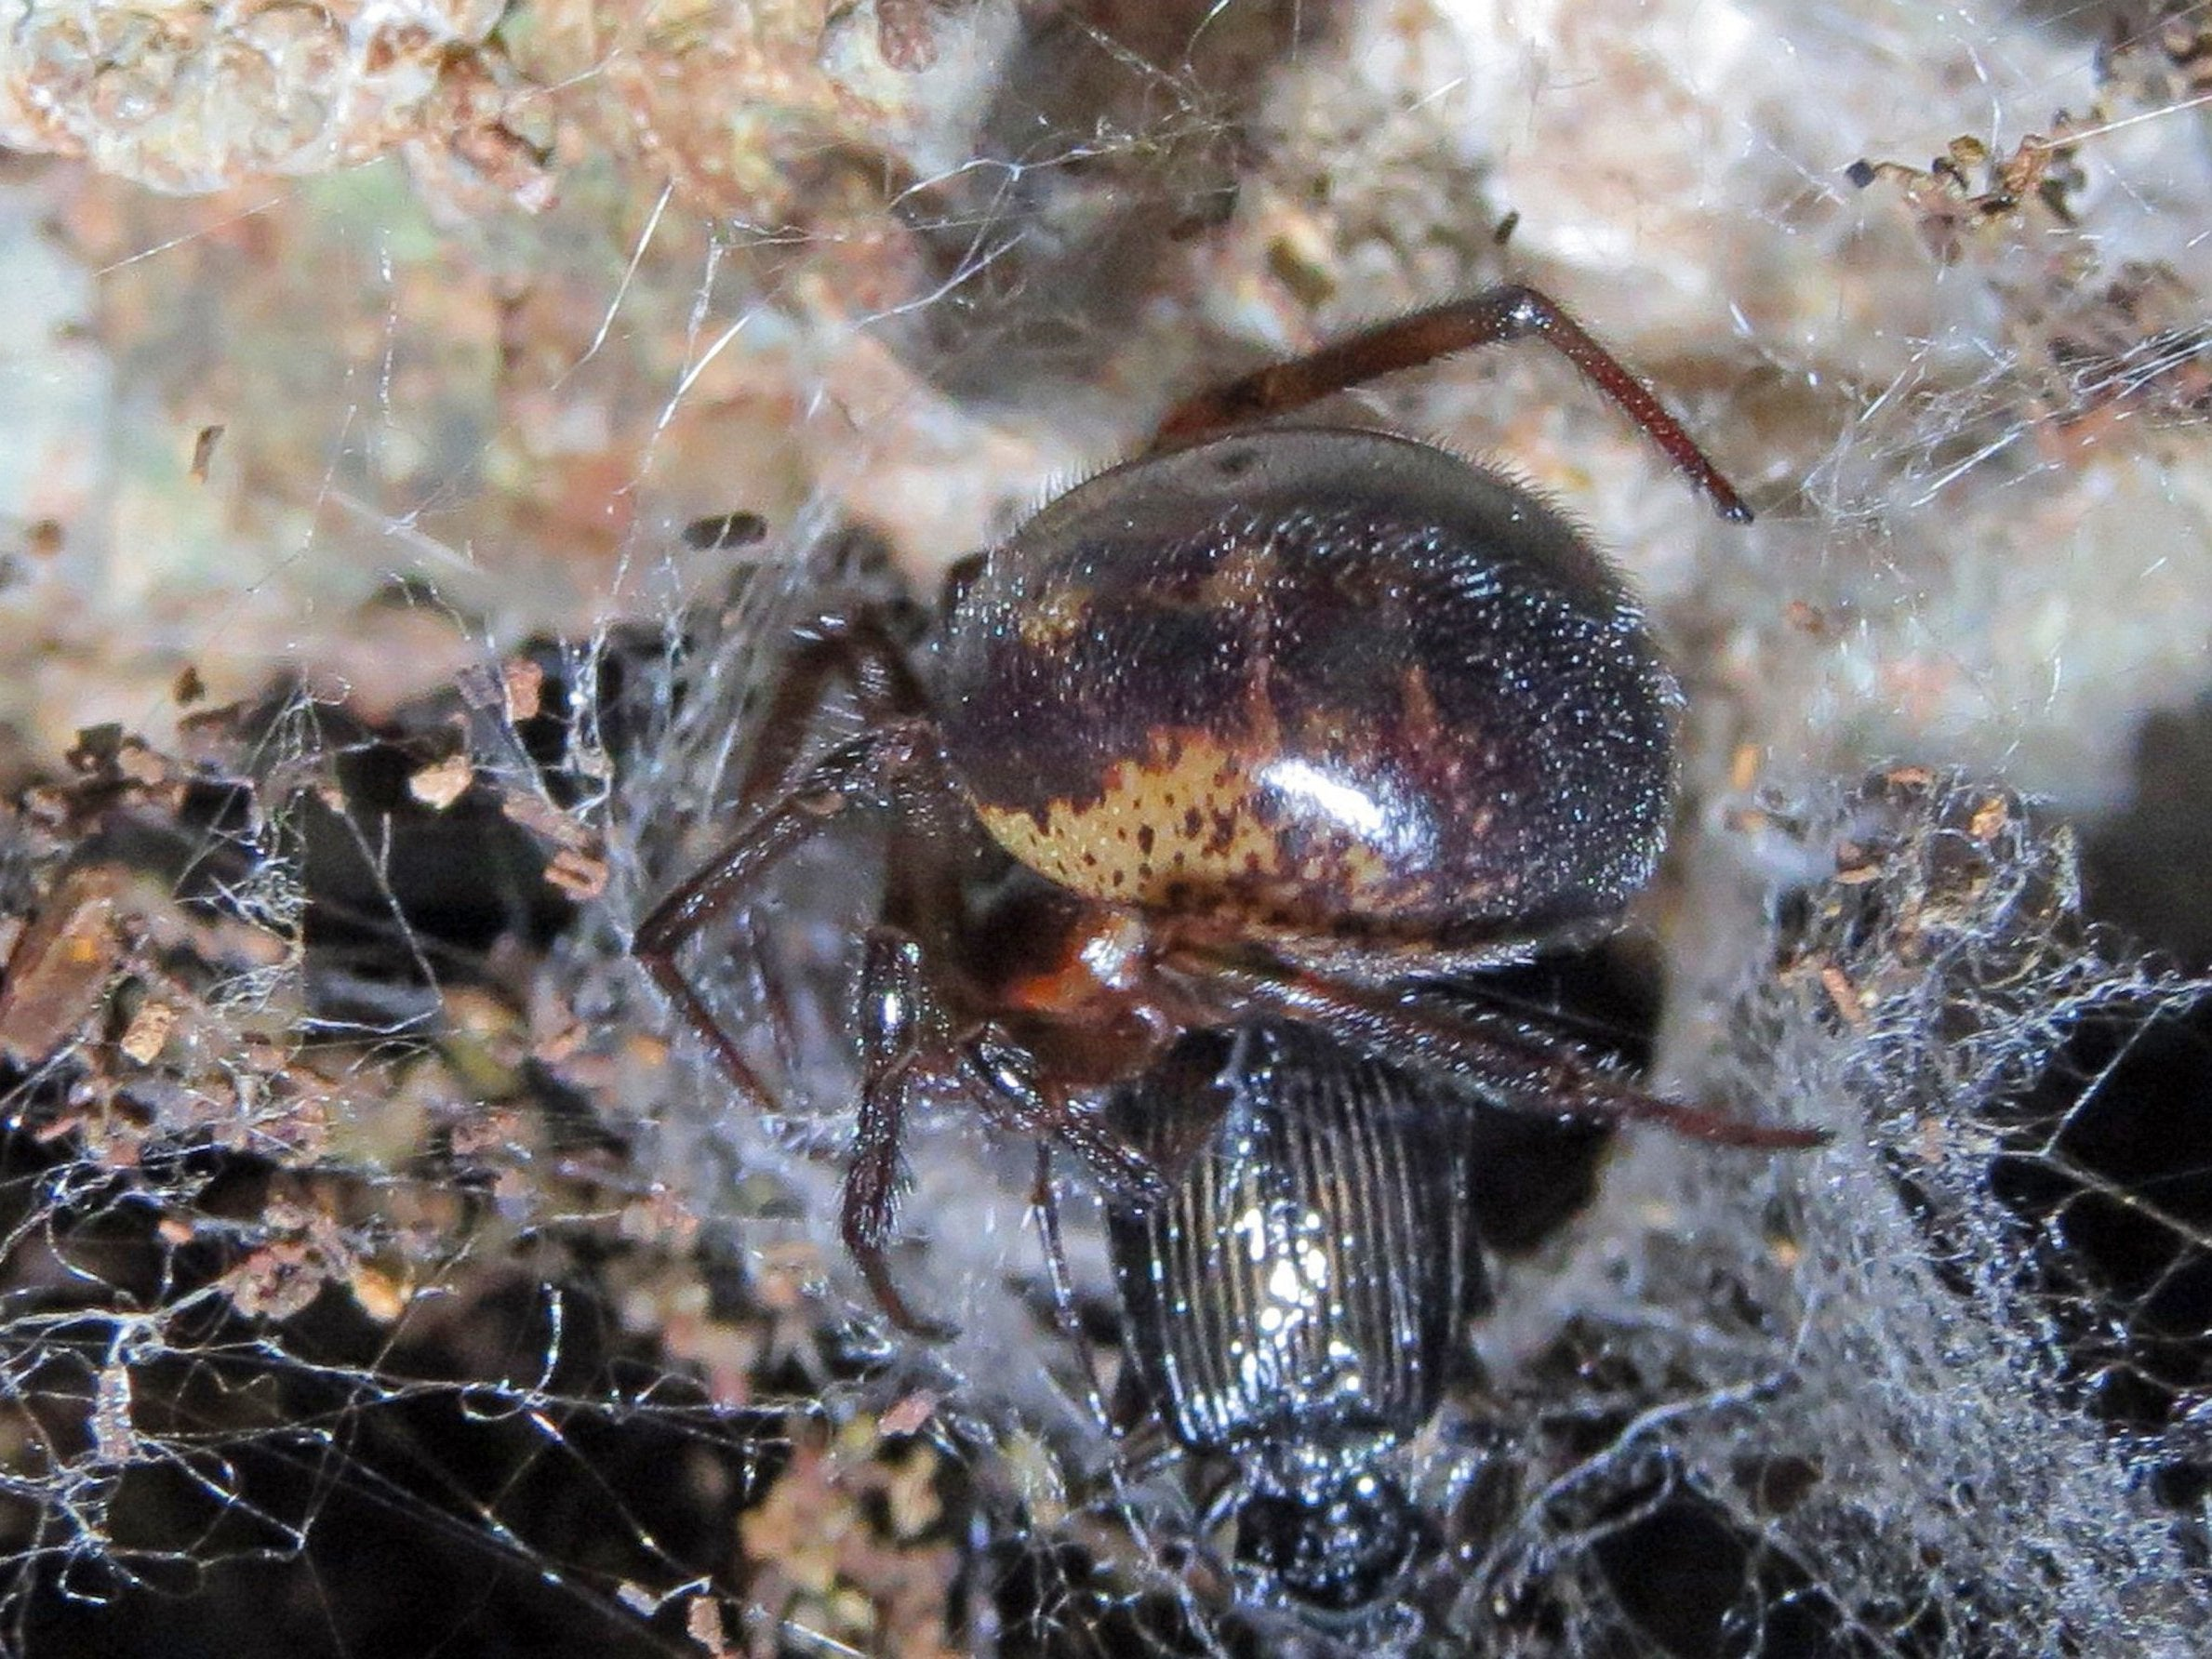 School closures over false widow spider infestation 'a complete overreaction', say scientists